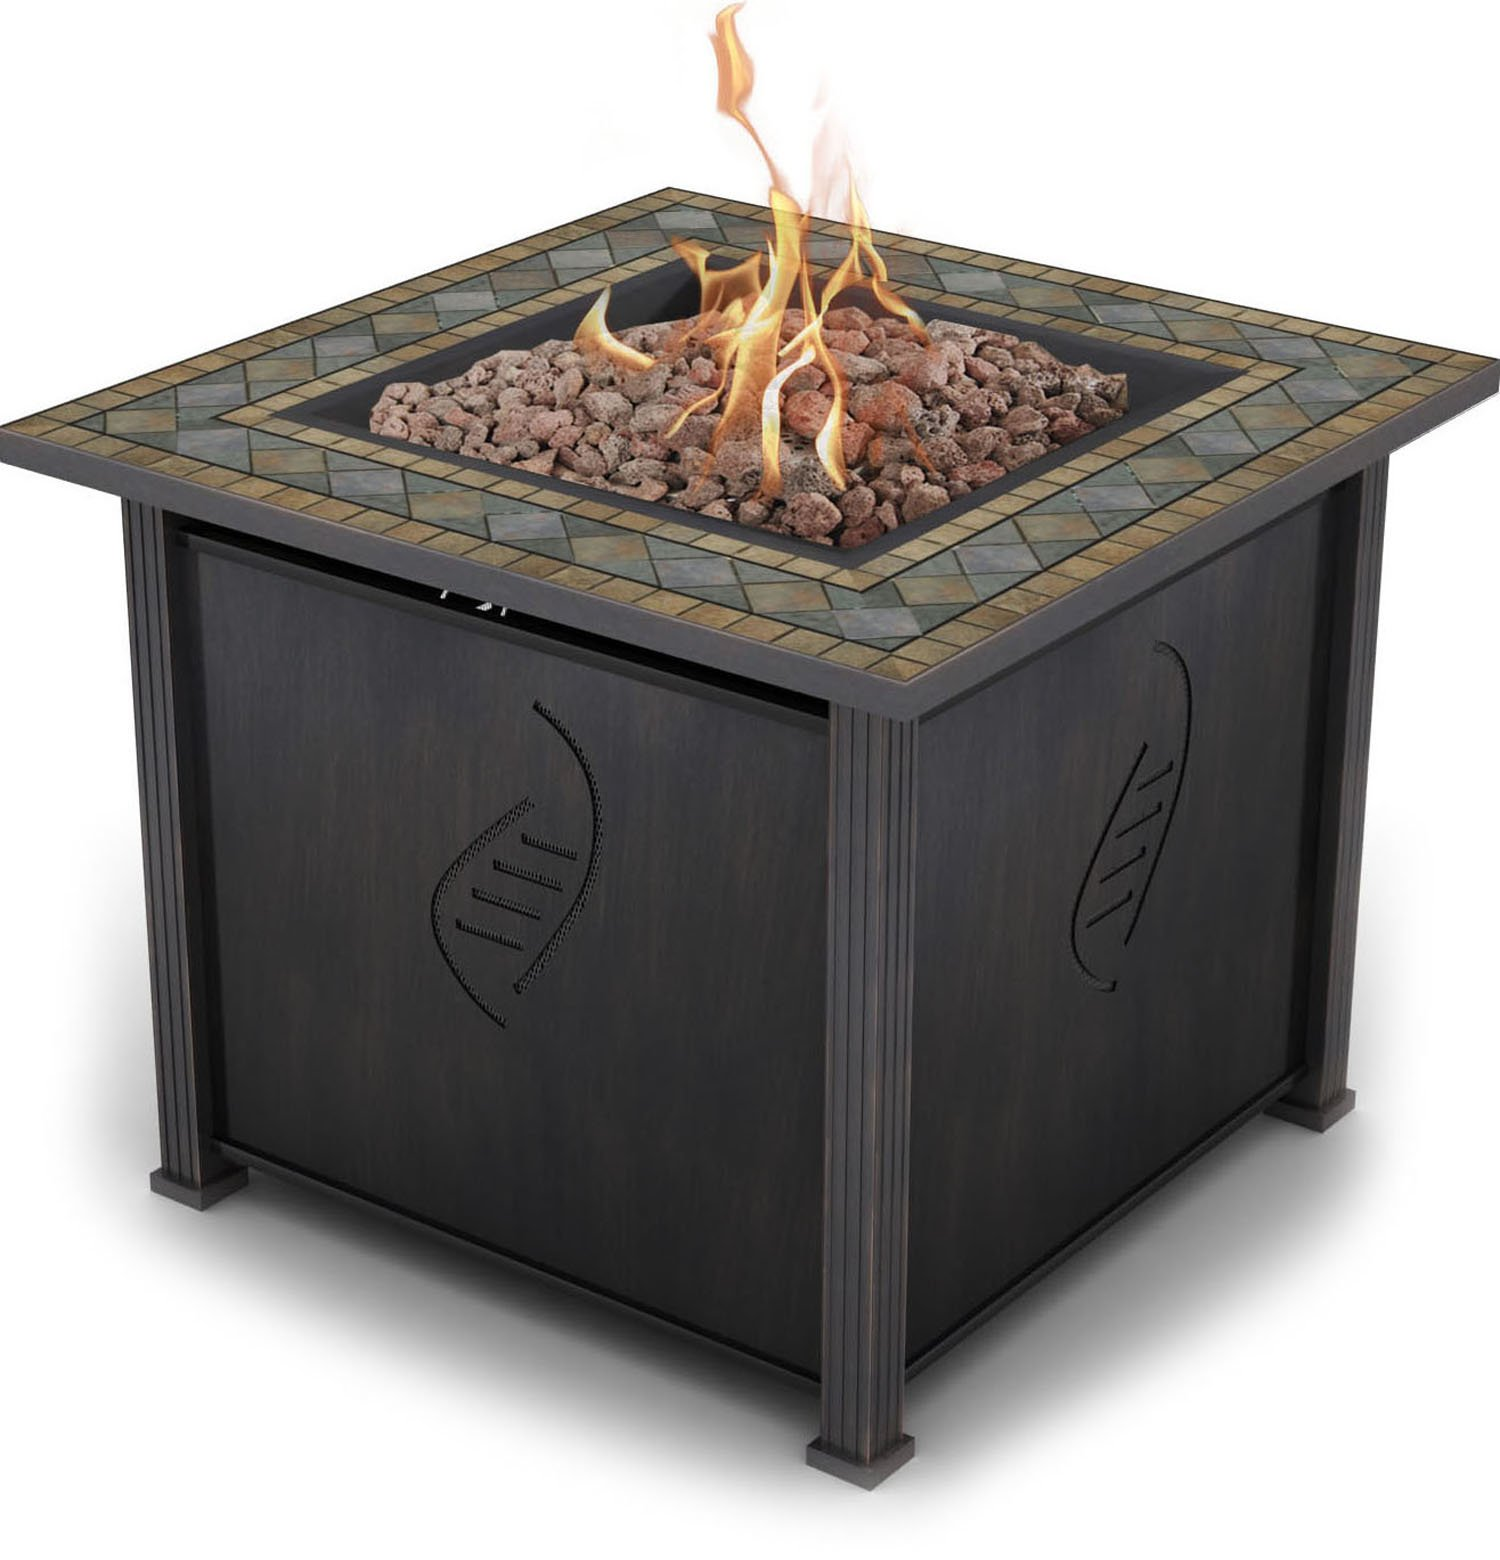 Bond Rockwell 68156 Gas Fire Table, 30''